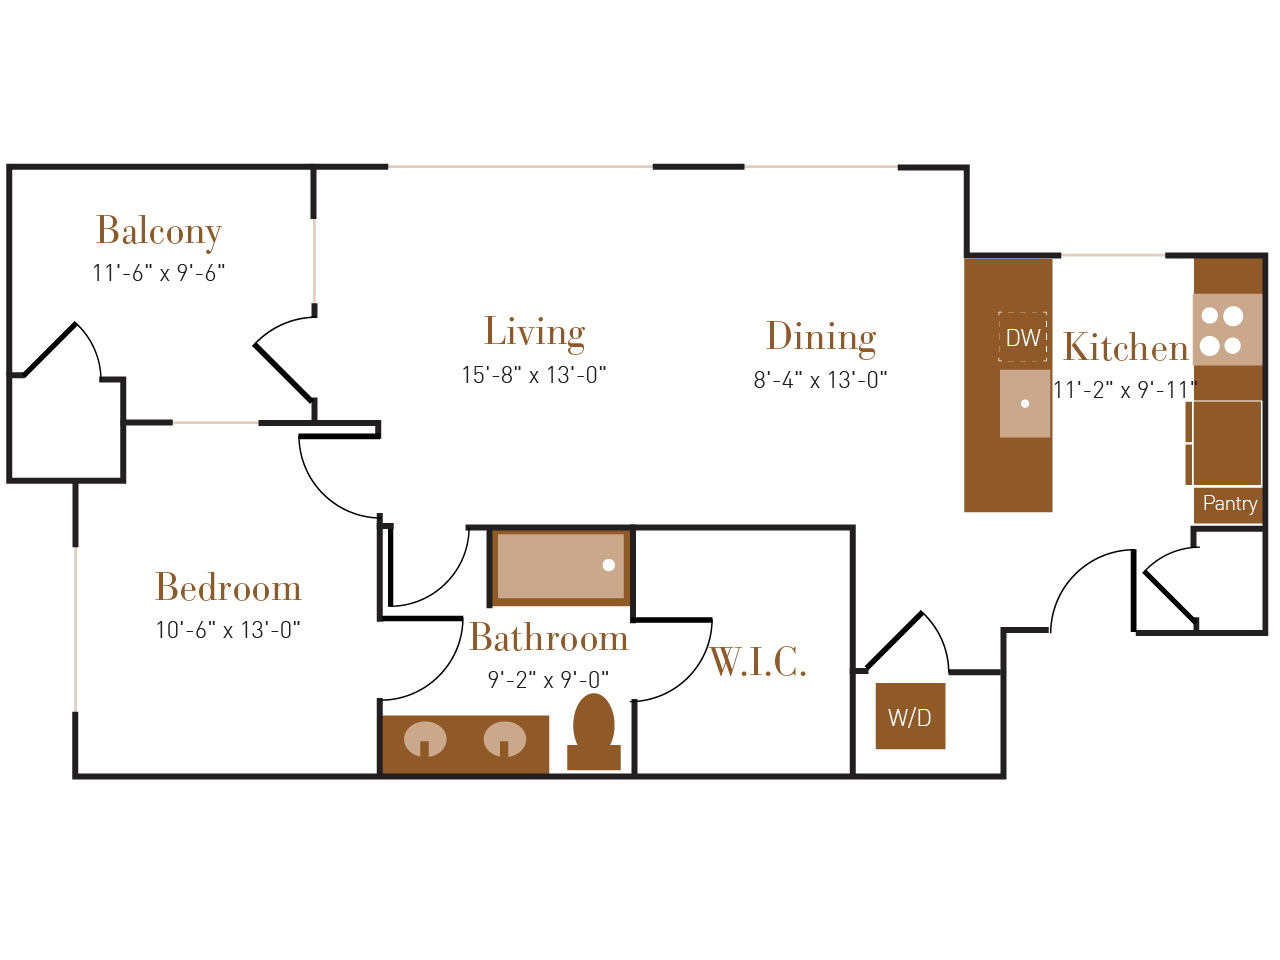 A Six floor plan diagram. One bedroom, one bathroom, an open kitchen dining and living area, a balcony, and a washer dryer.